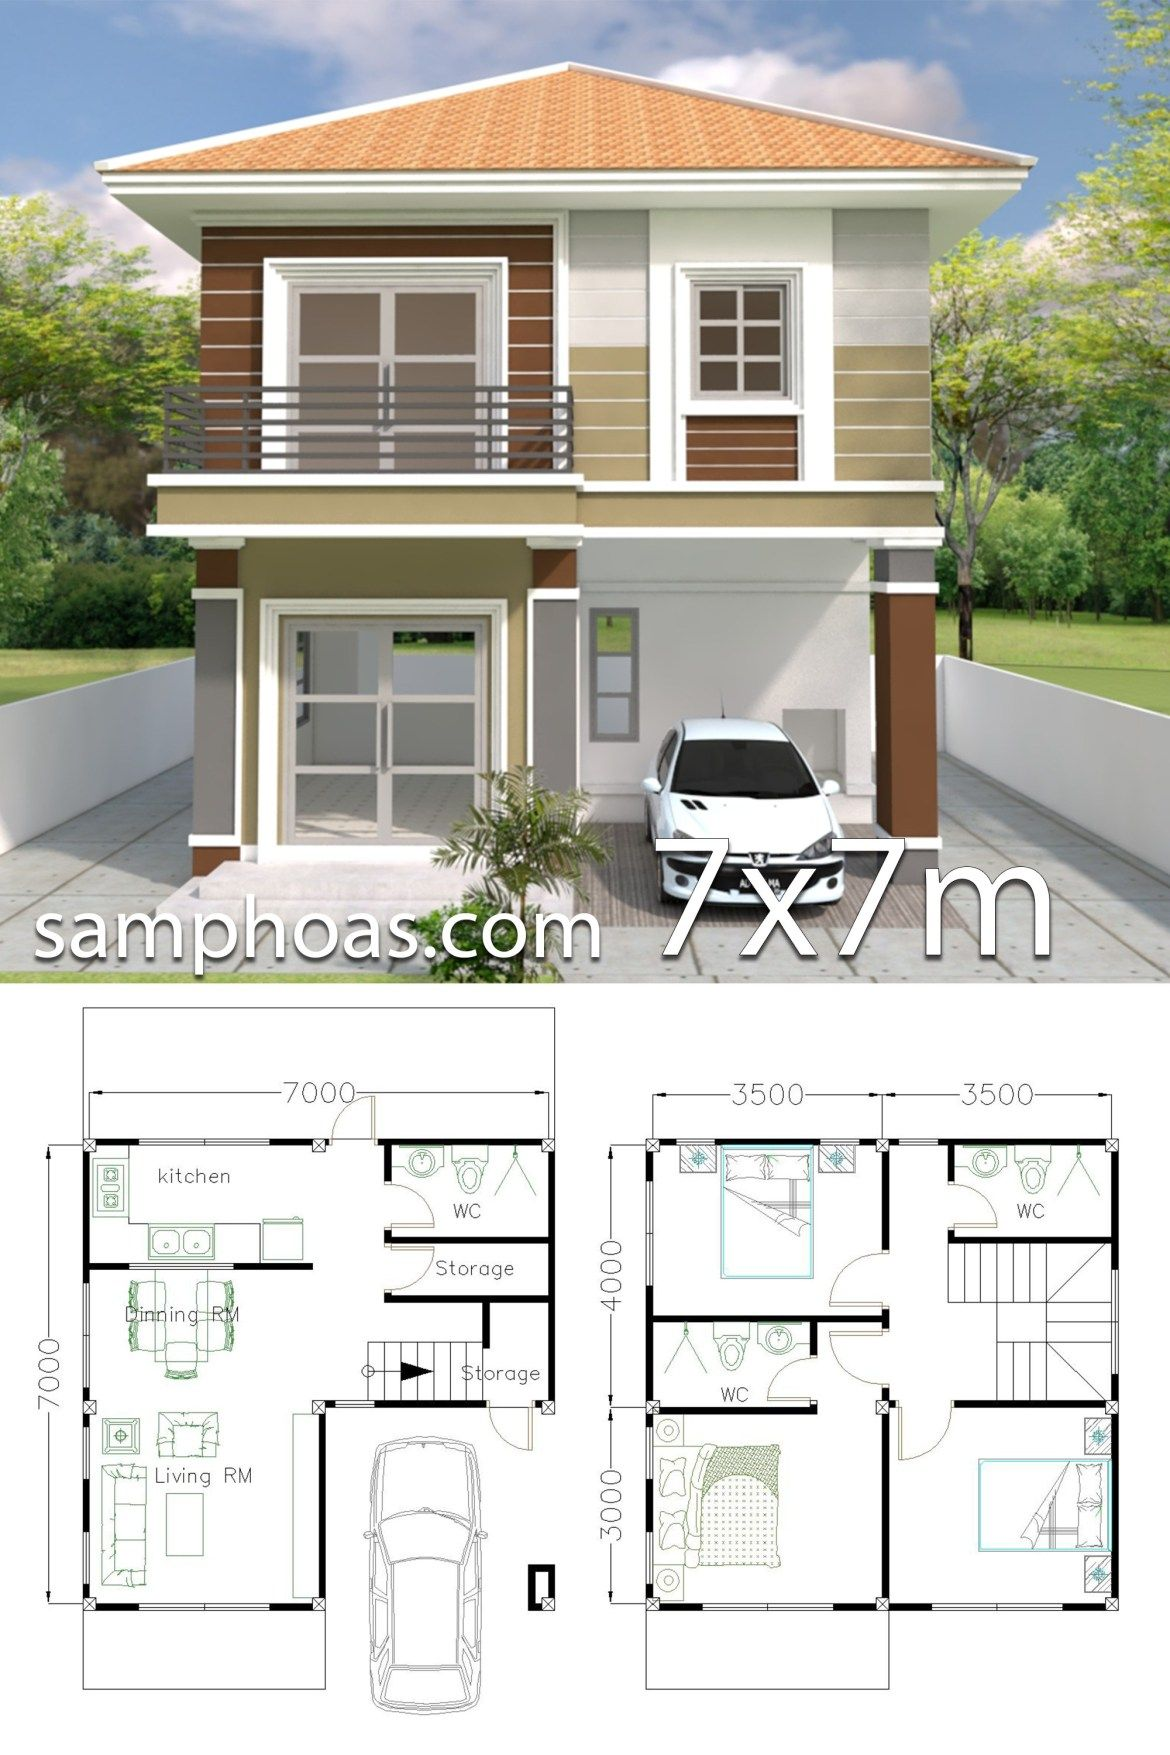 Home design plan 7x7m with 3 bedrooms samphoas plansearch modern house plans small house